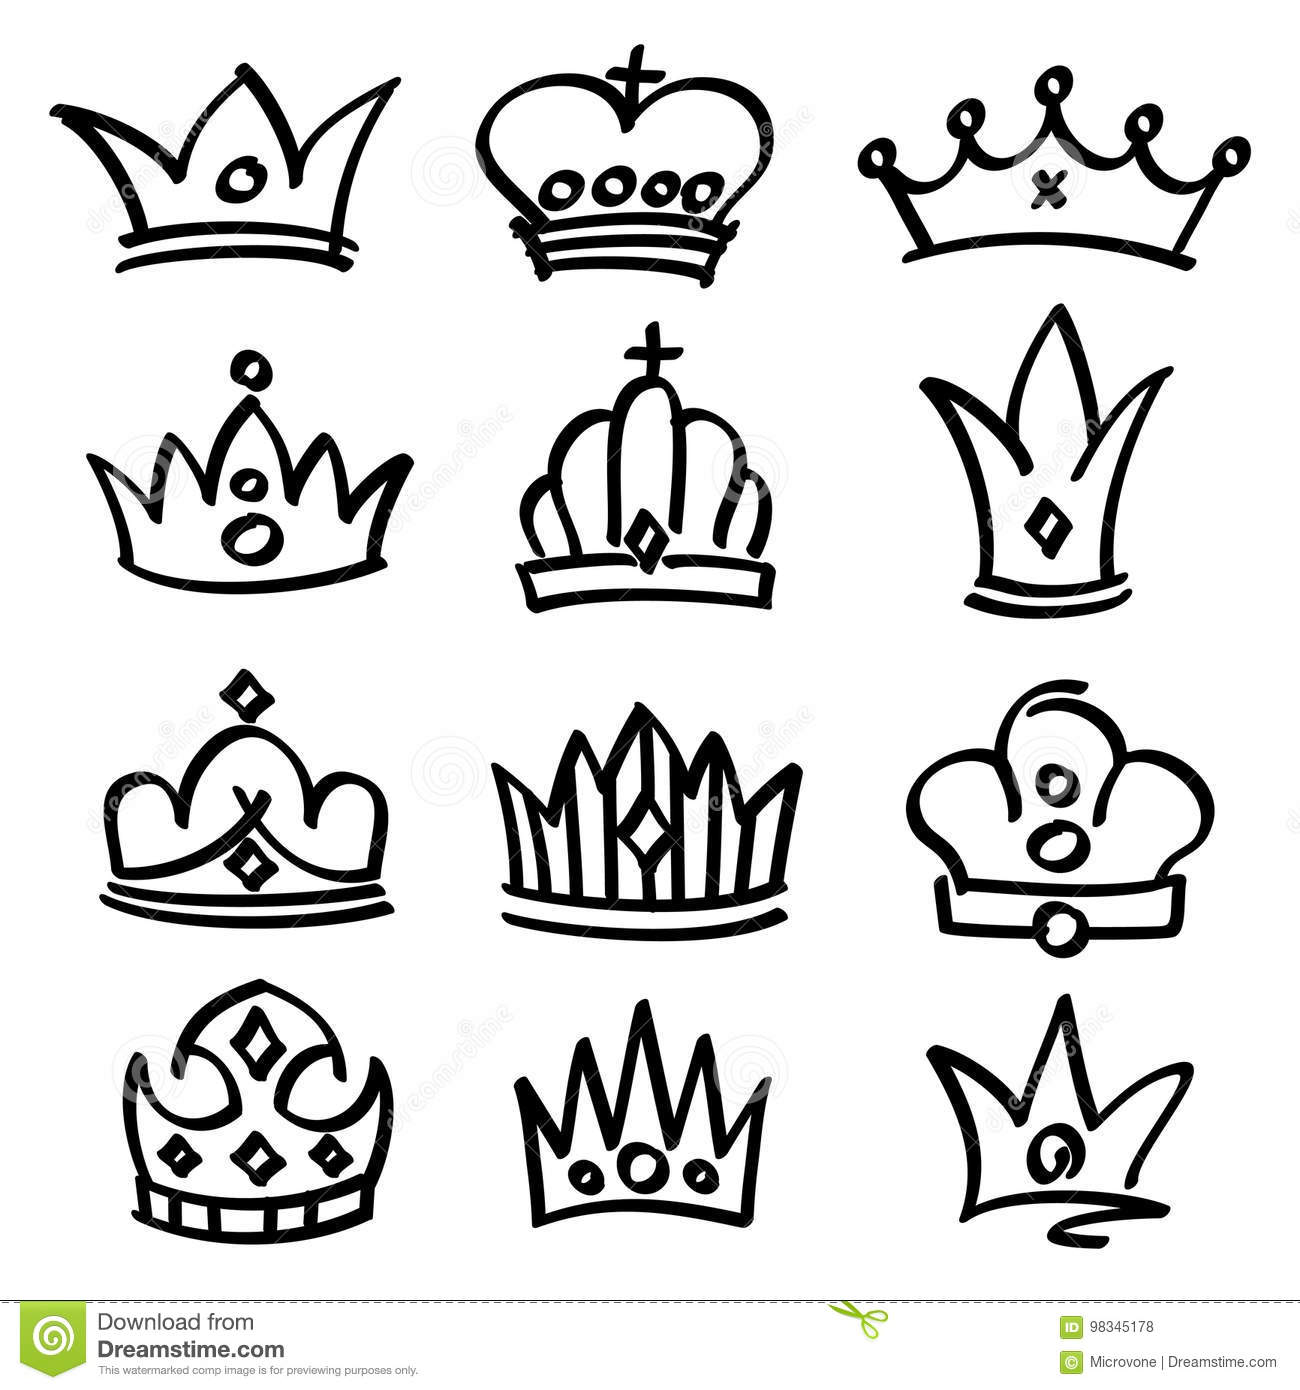 Vector Hand Drawn Princess Crowns Sketch Doodle Royalty